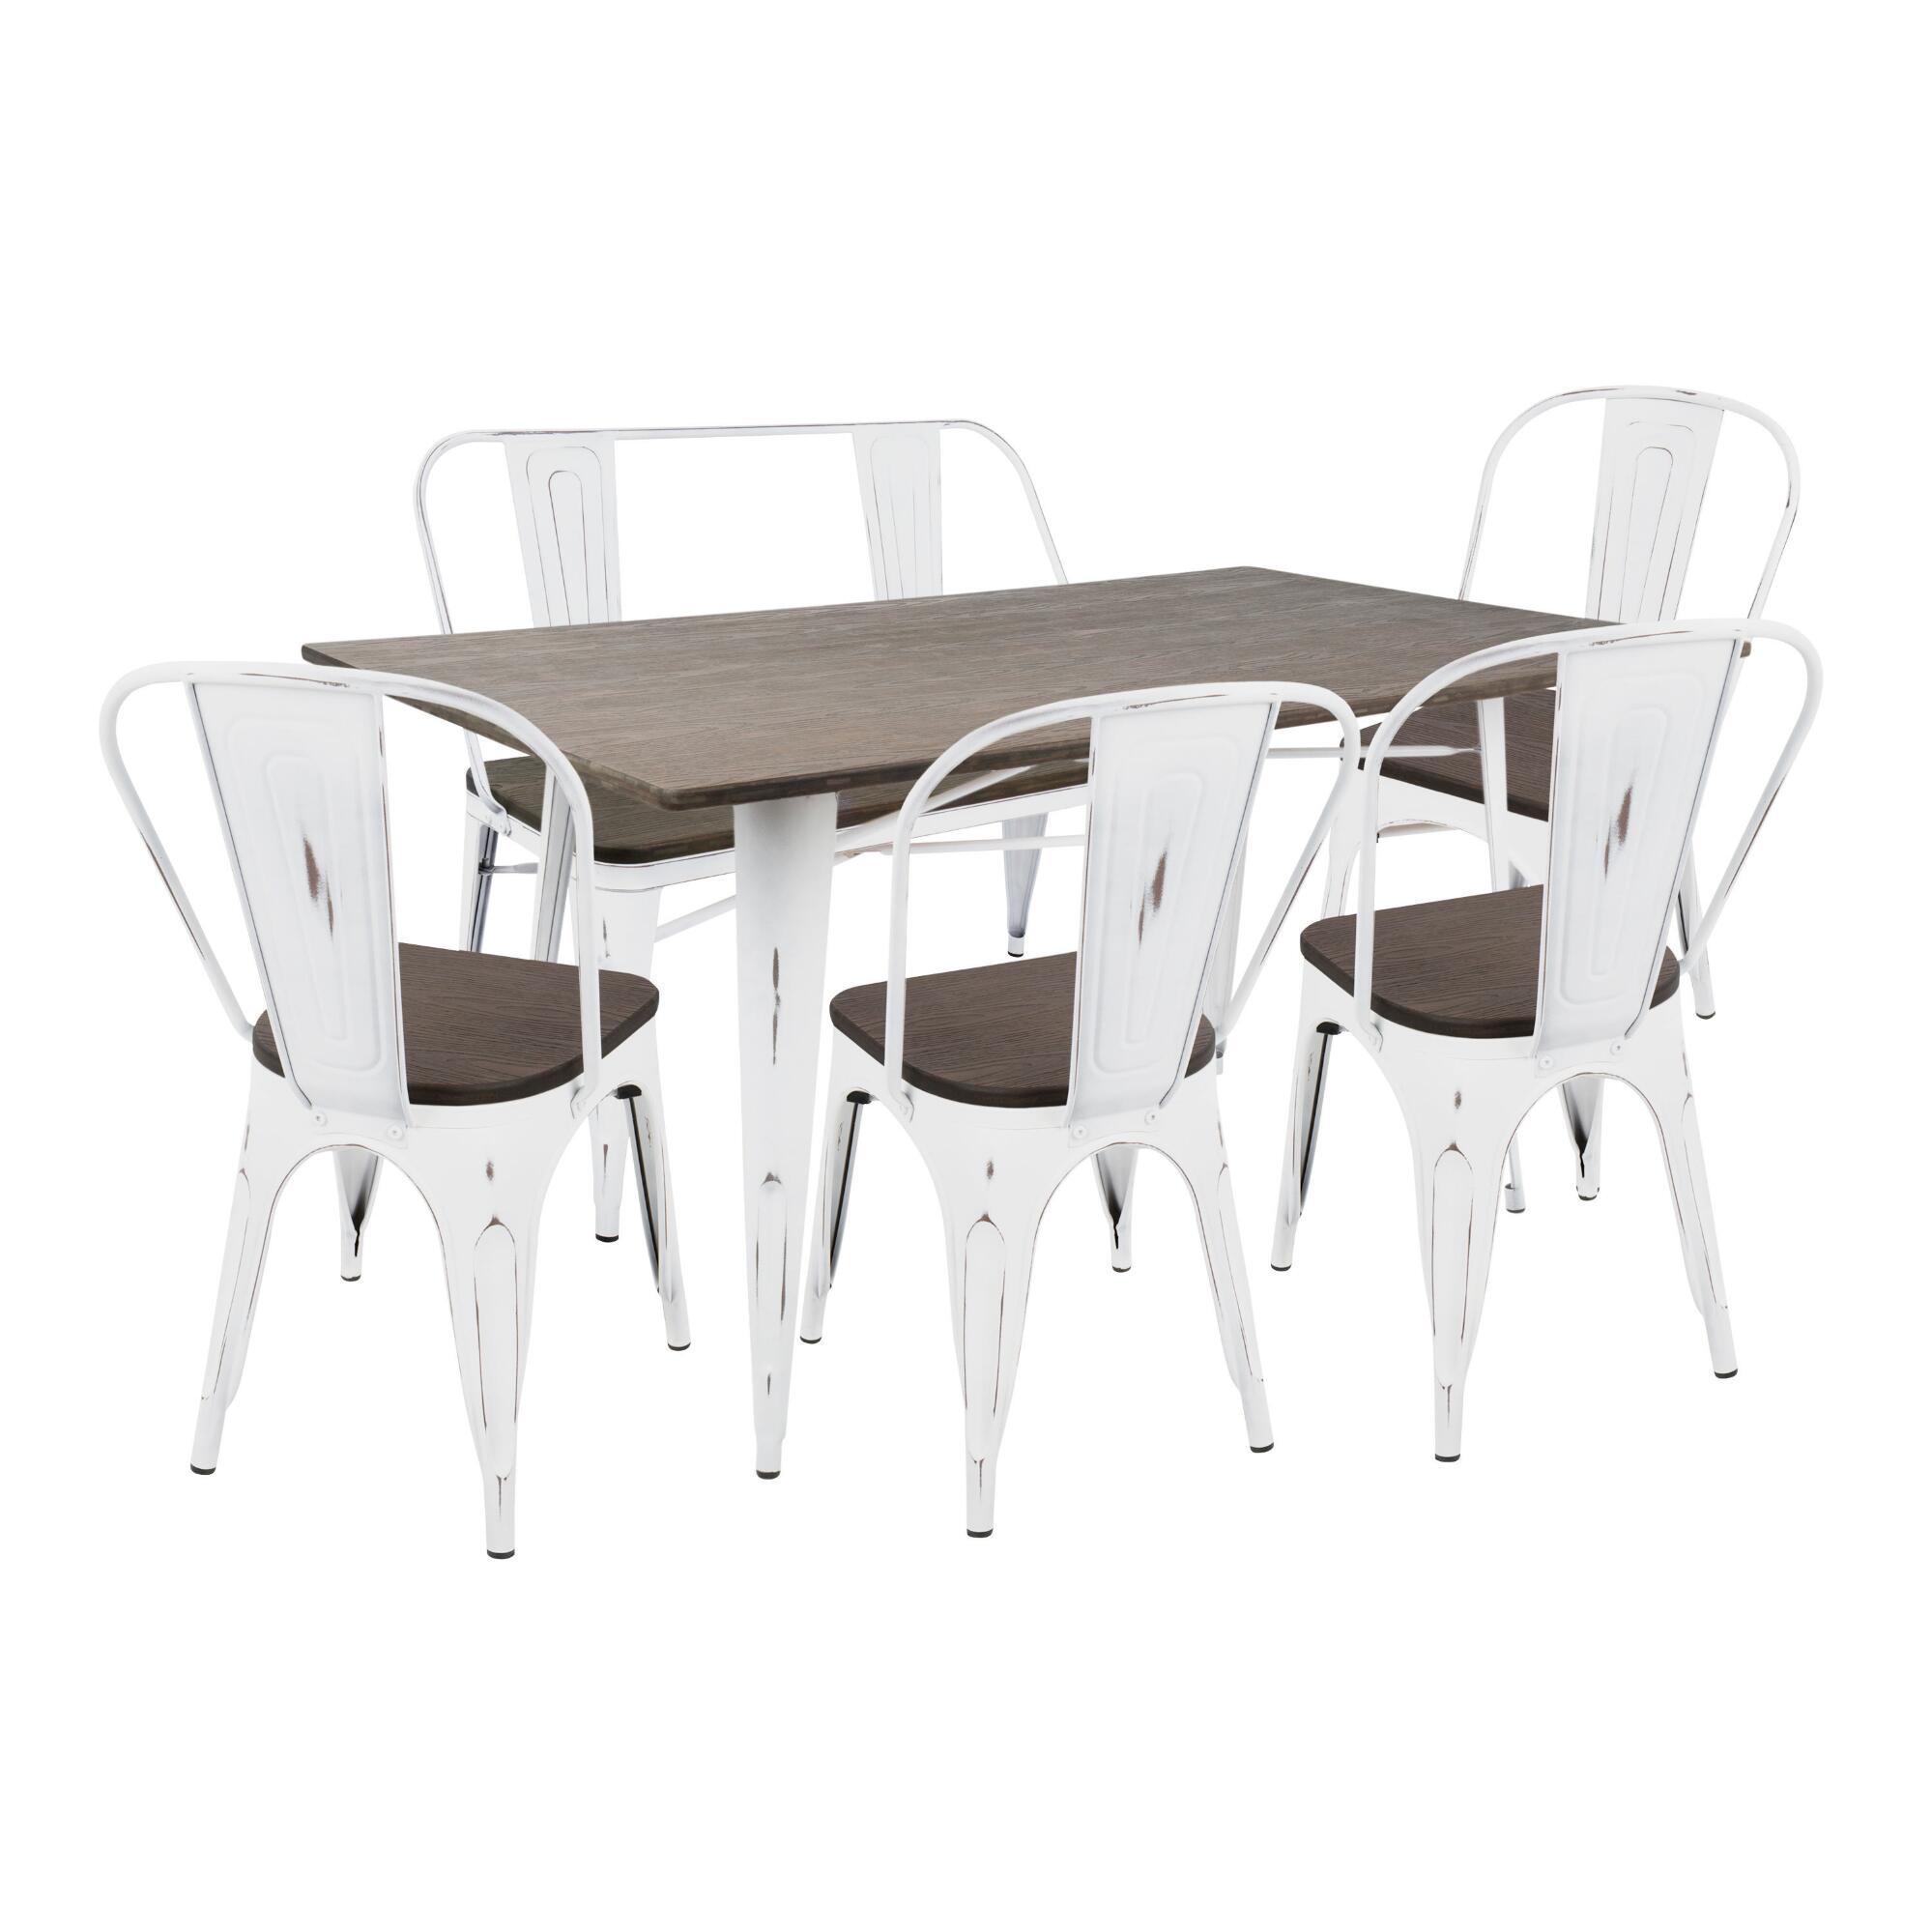 White and Espresso Ridgeby Dining Collection by World Market